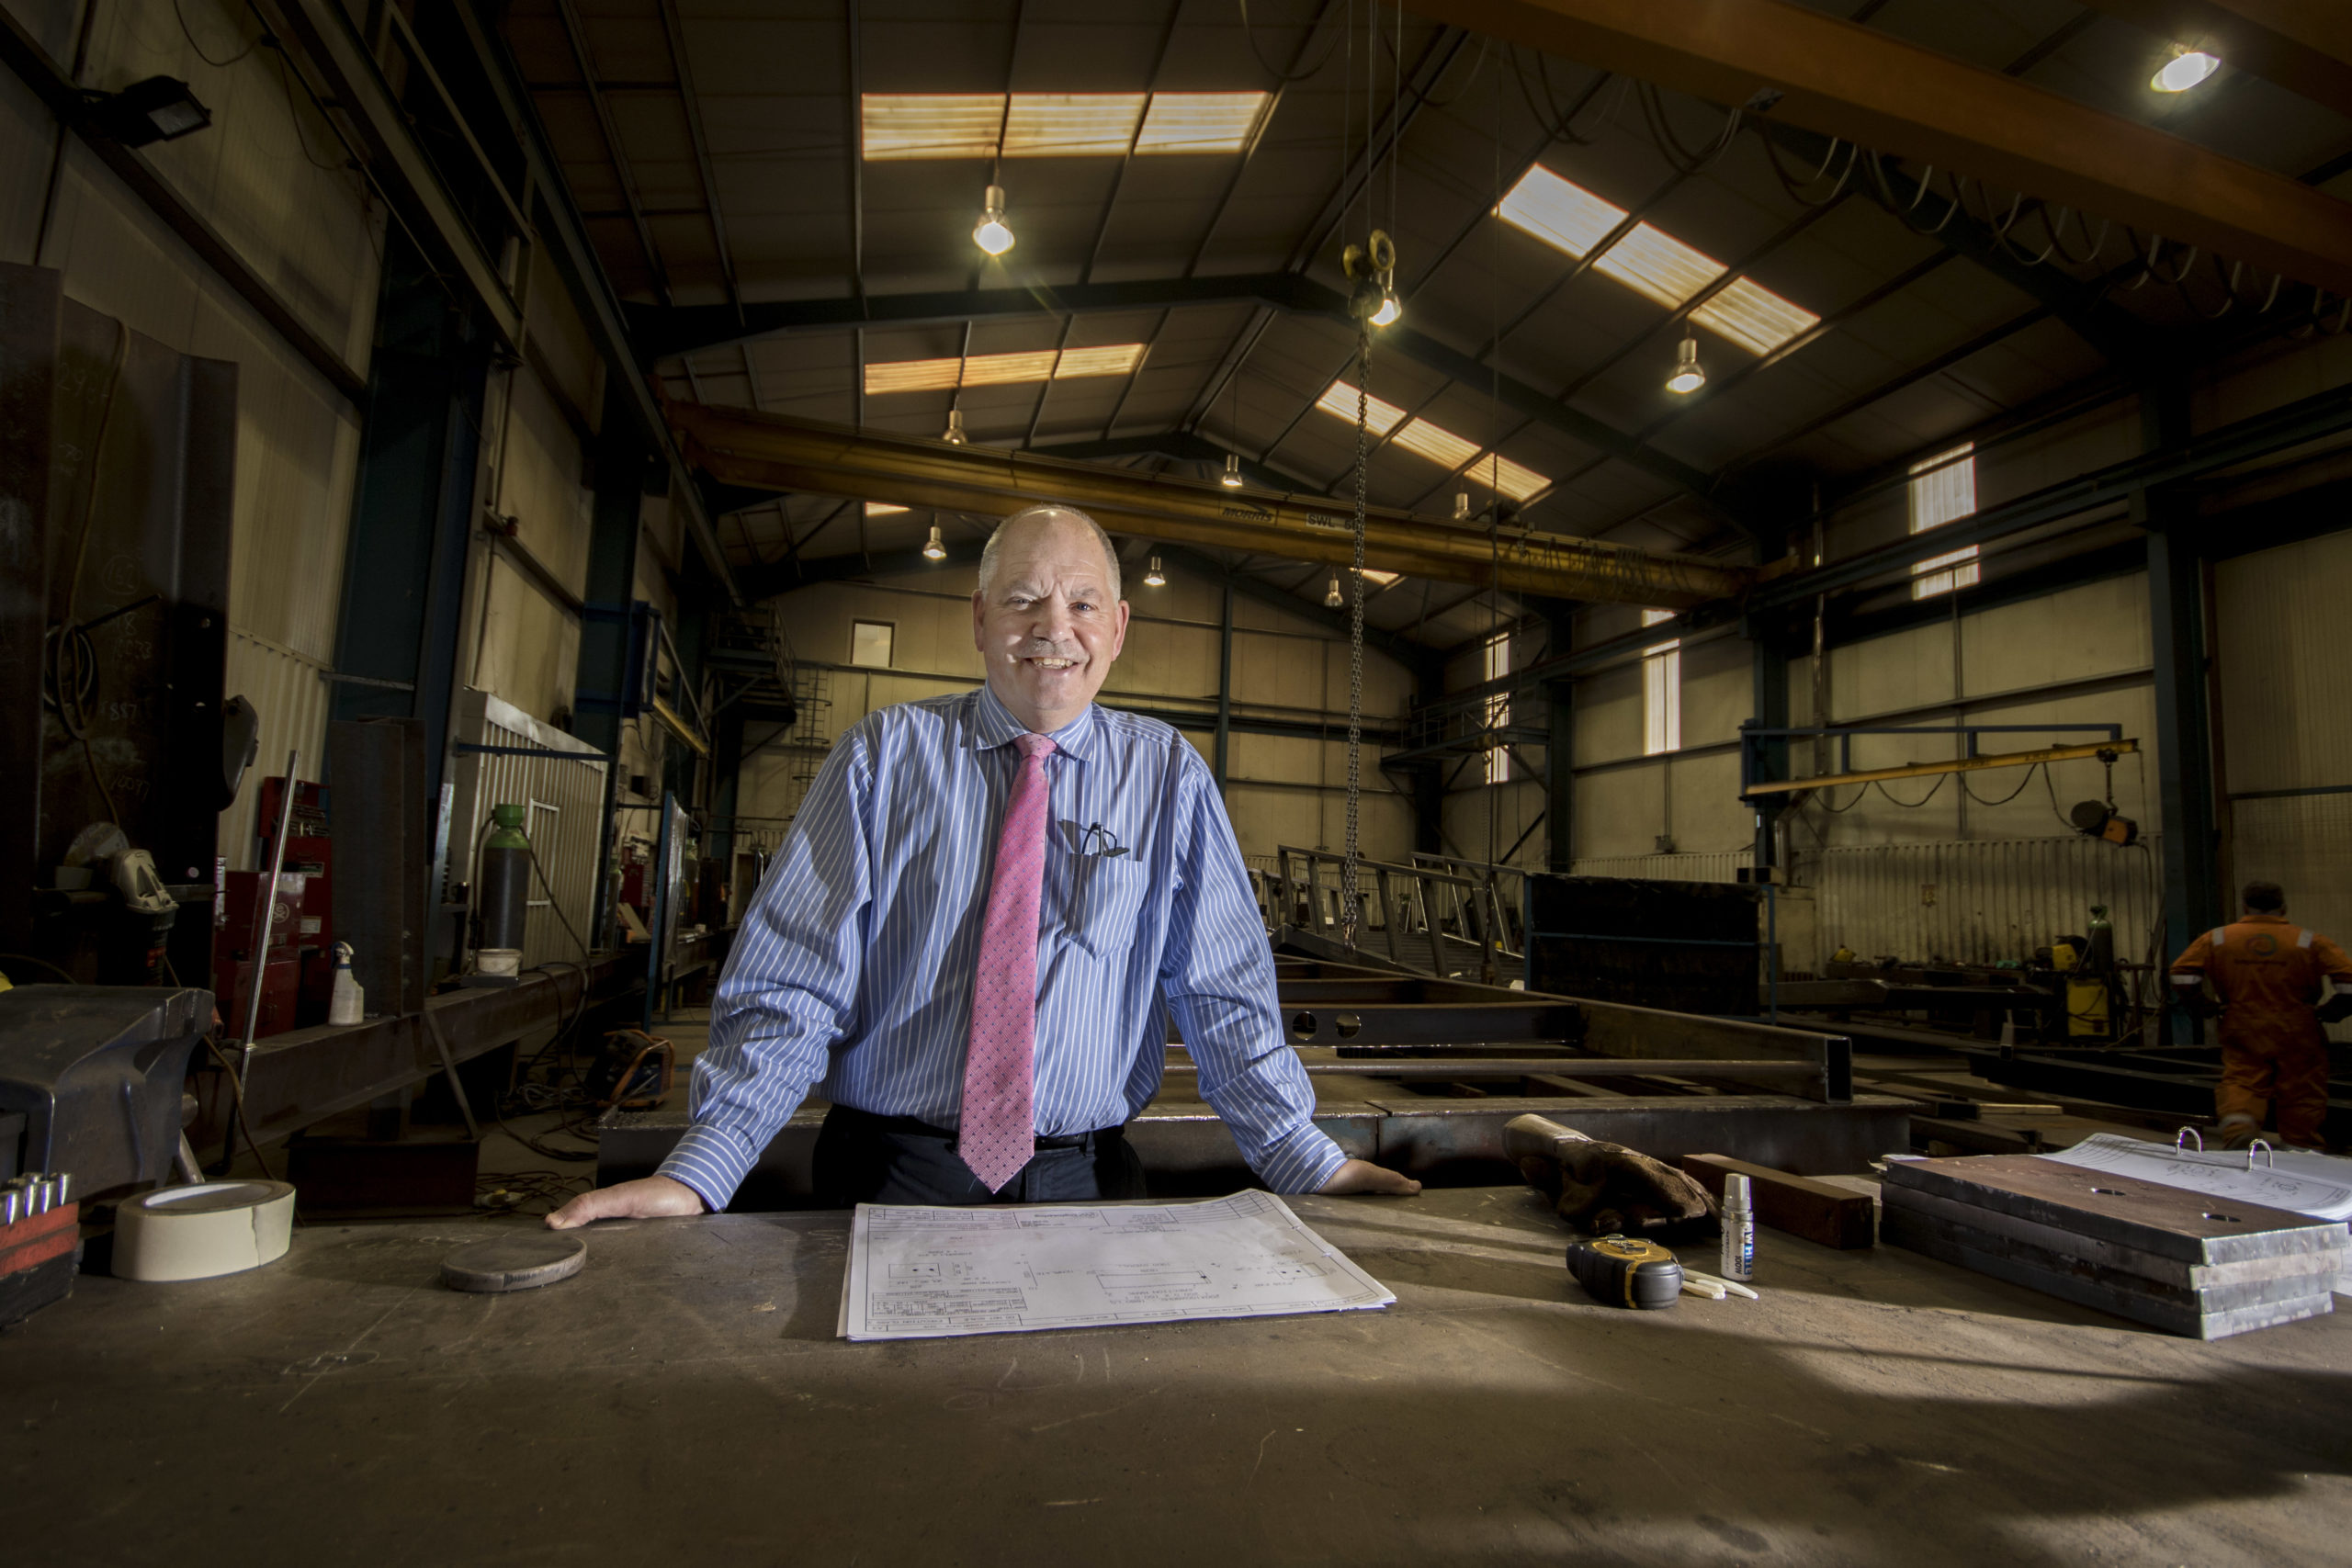 Managing direct of AJ Engineering and Construction Services, Alan James has been shortlisted for an award.